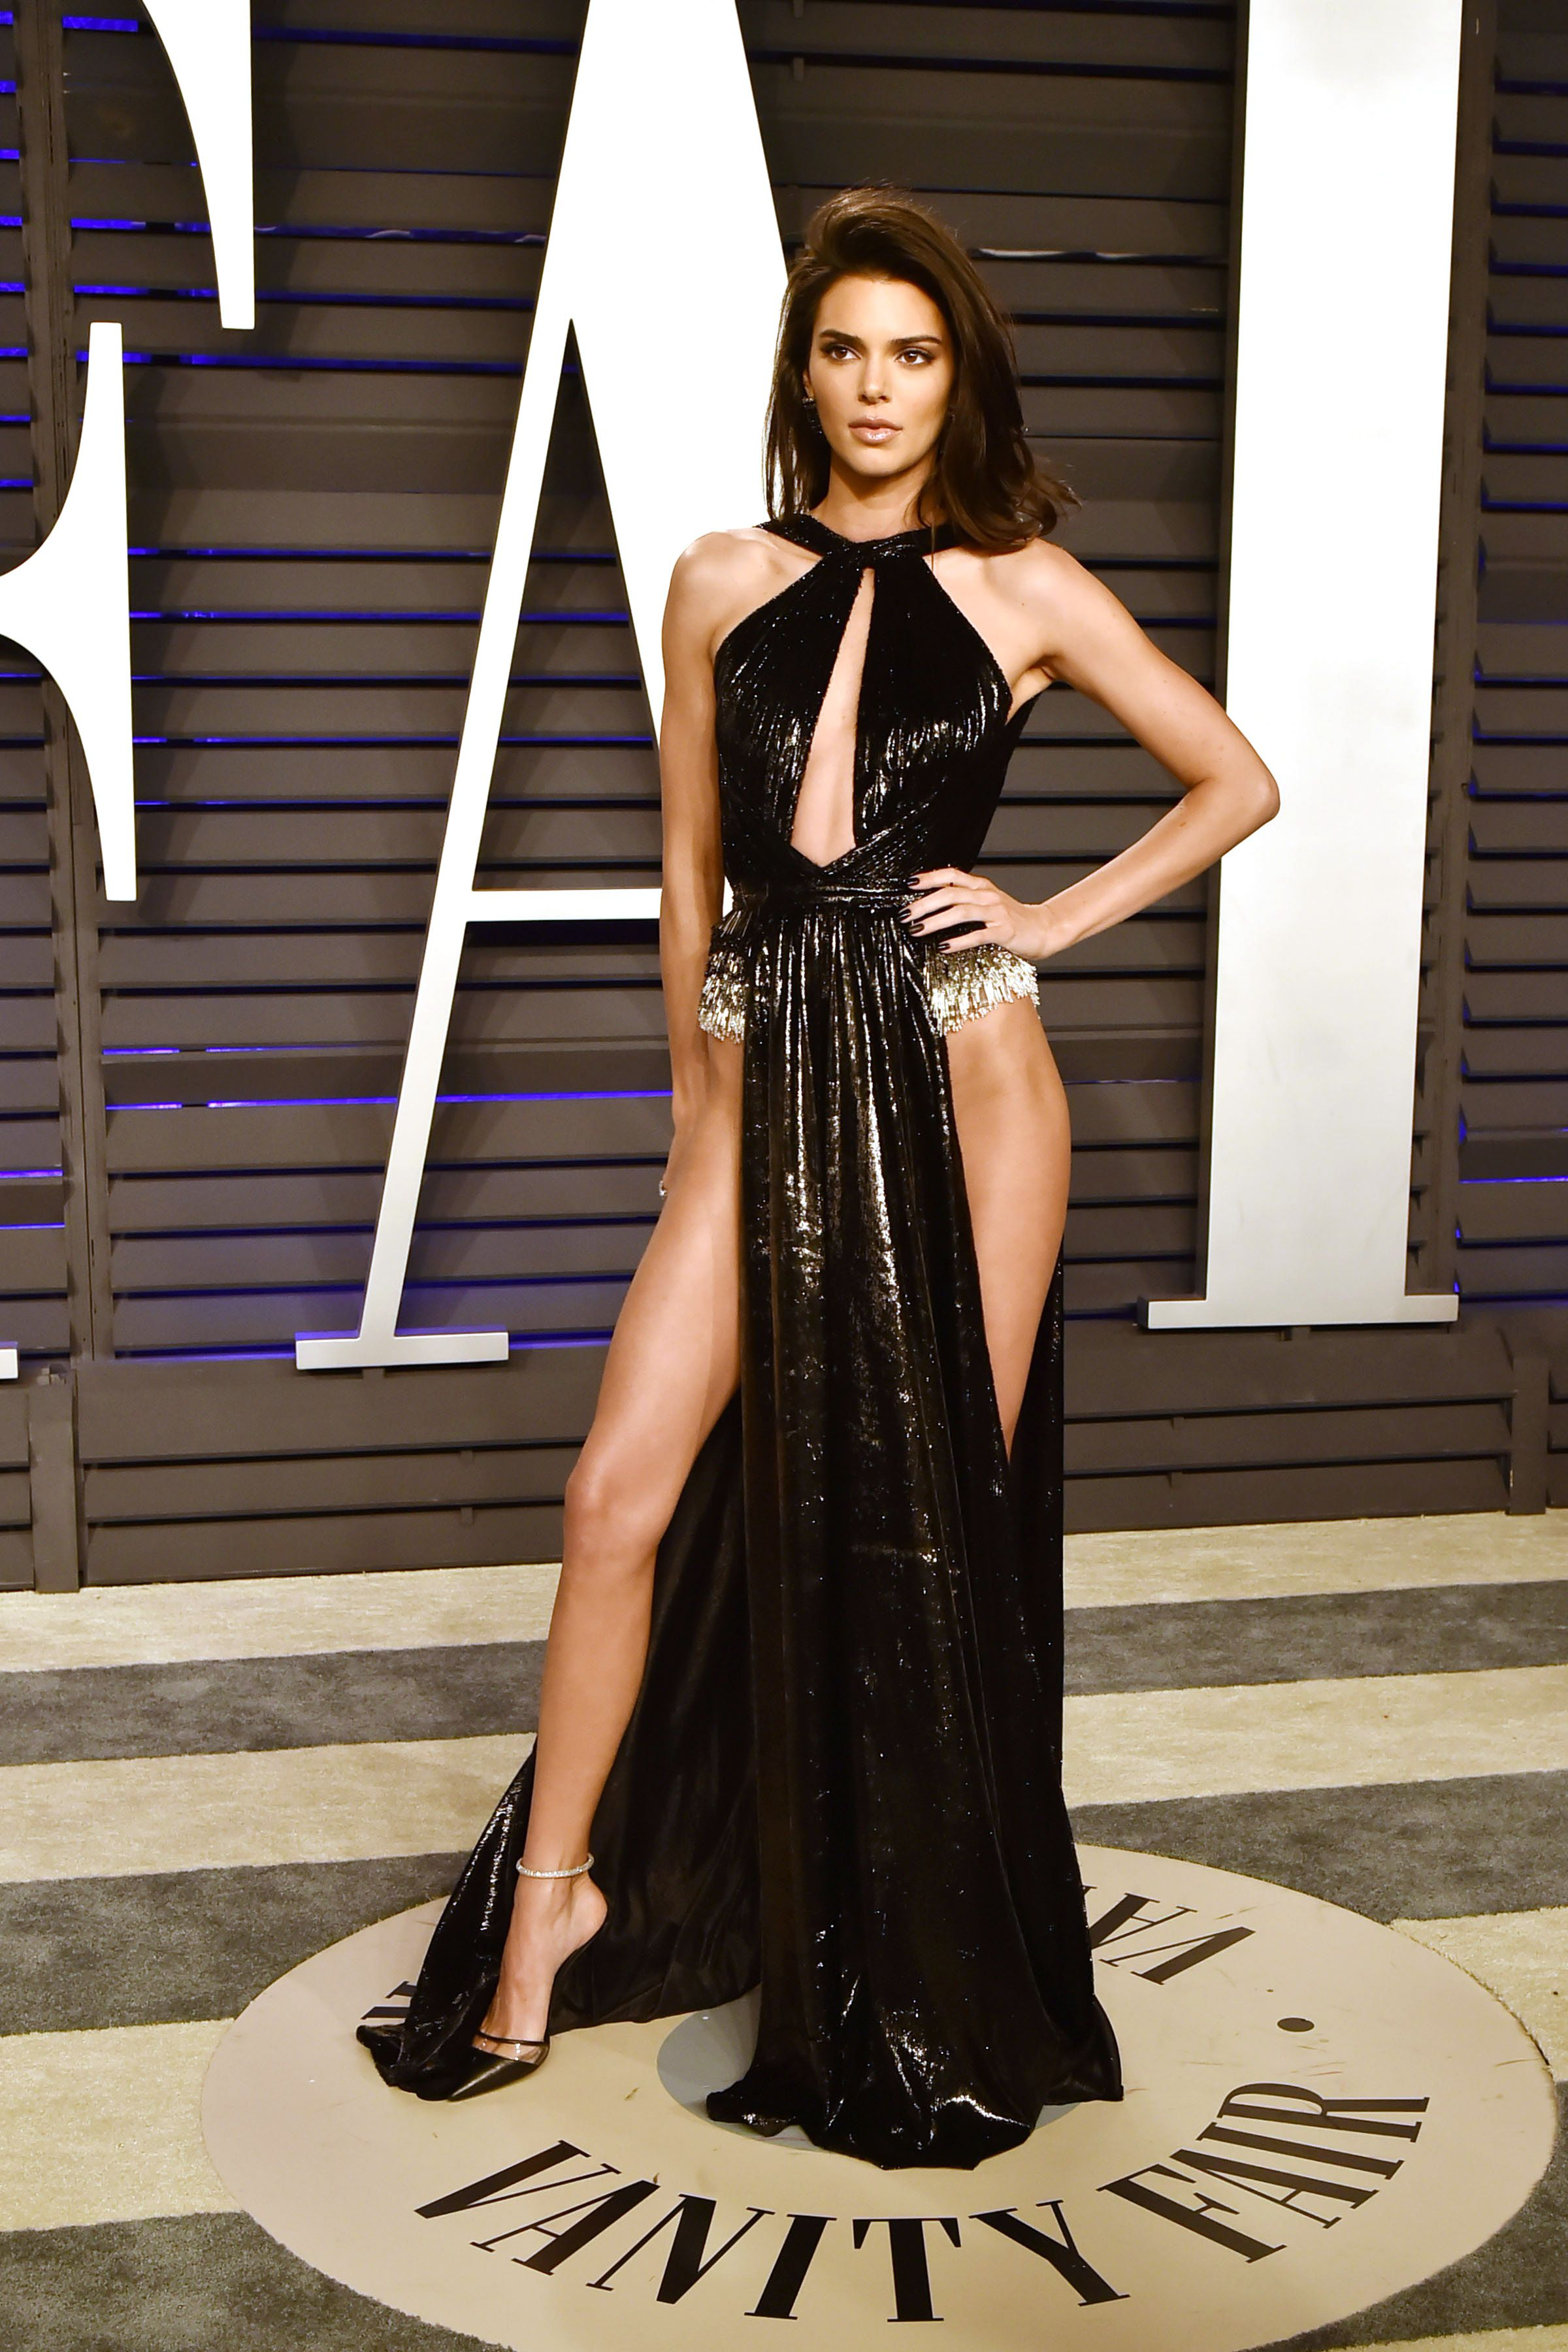 Kendall Jenner At Vanity Fair's Oscars after-party, the model made sure all eyes were on her in this Rami Kadi black dress .